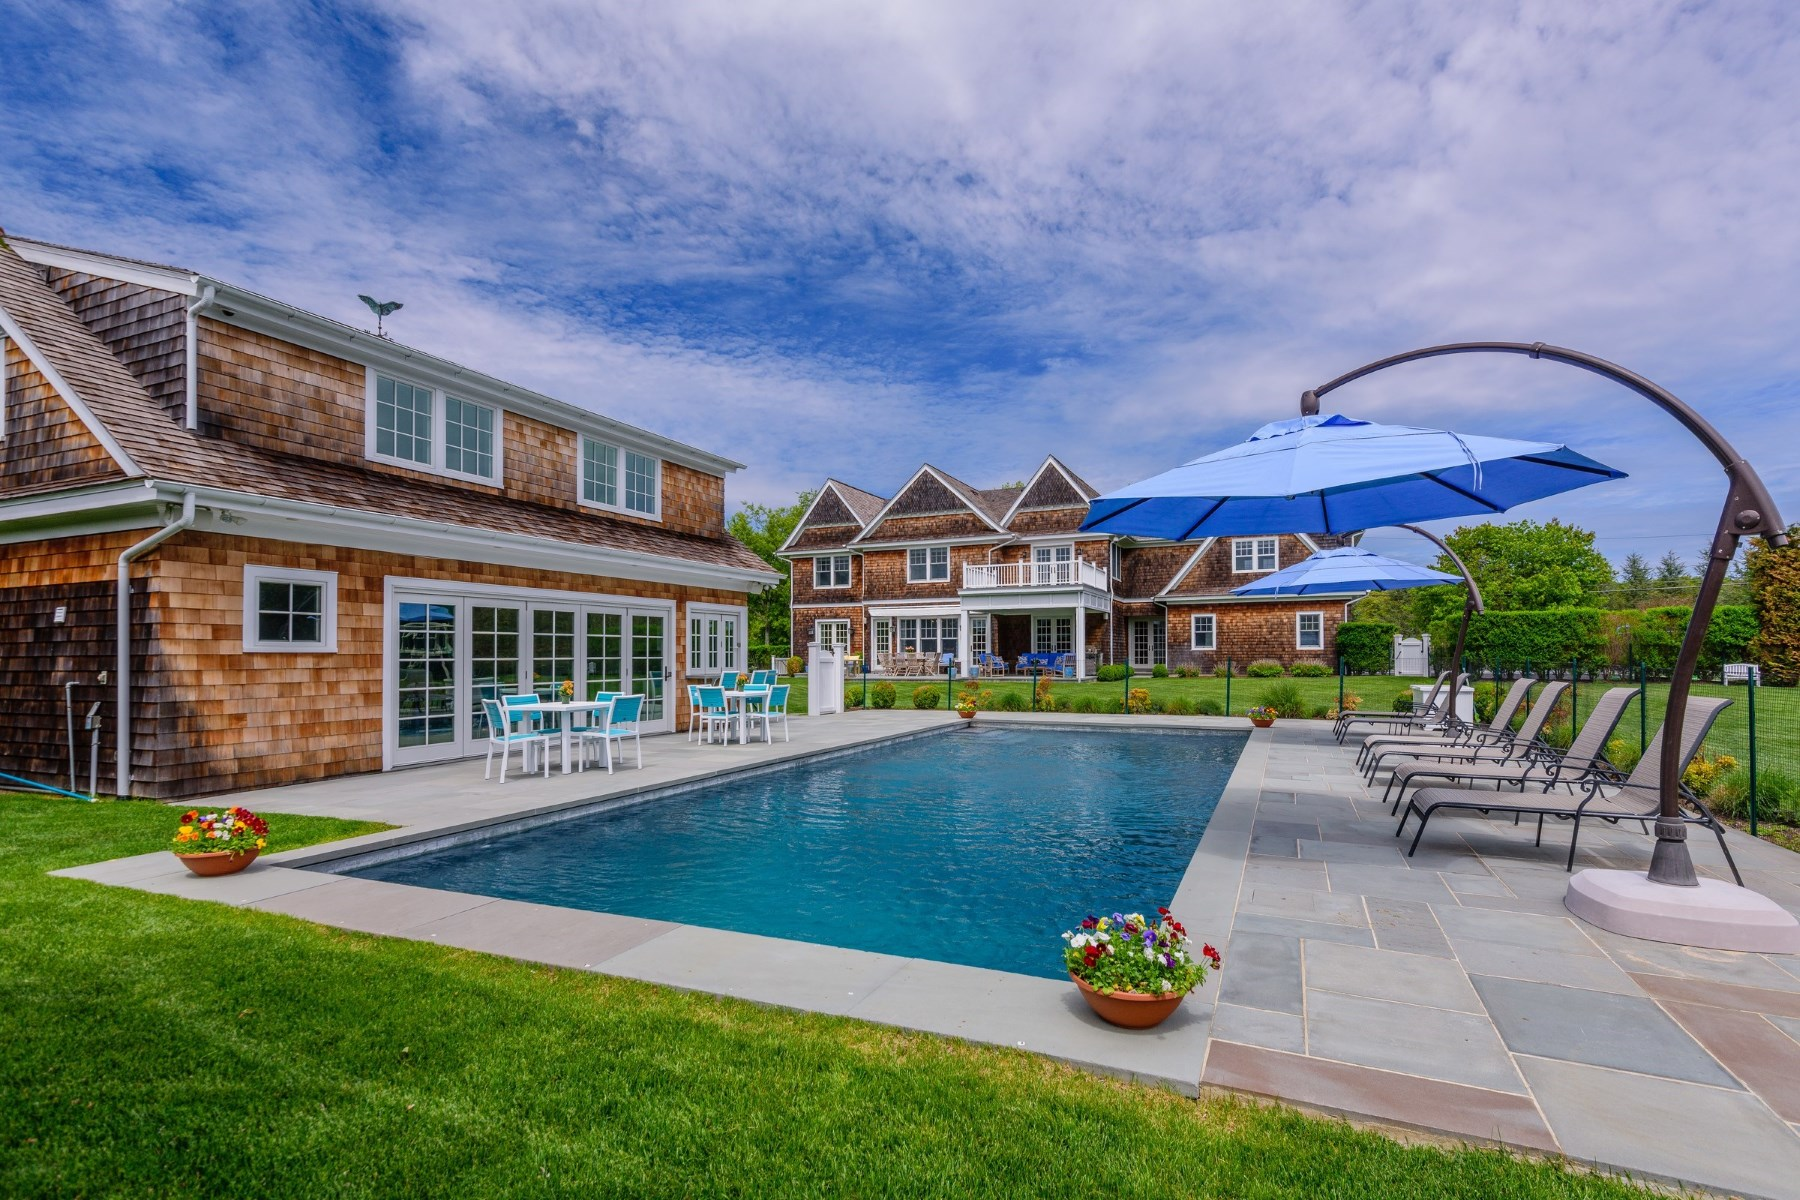 Maison unifamiliale pour l Vente à Resort Living with Sunset Views 590 Lumber Lane Bridgehampton North, Bridgehampton, New York, 11932 États-Unis